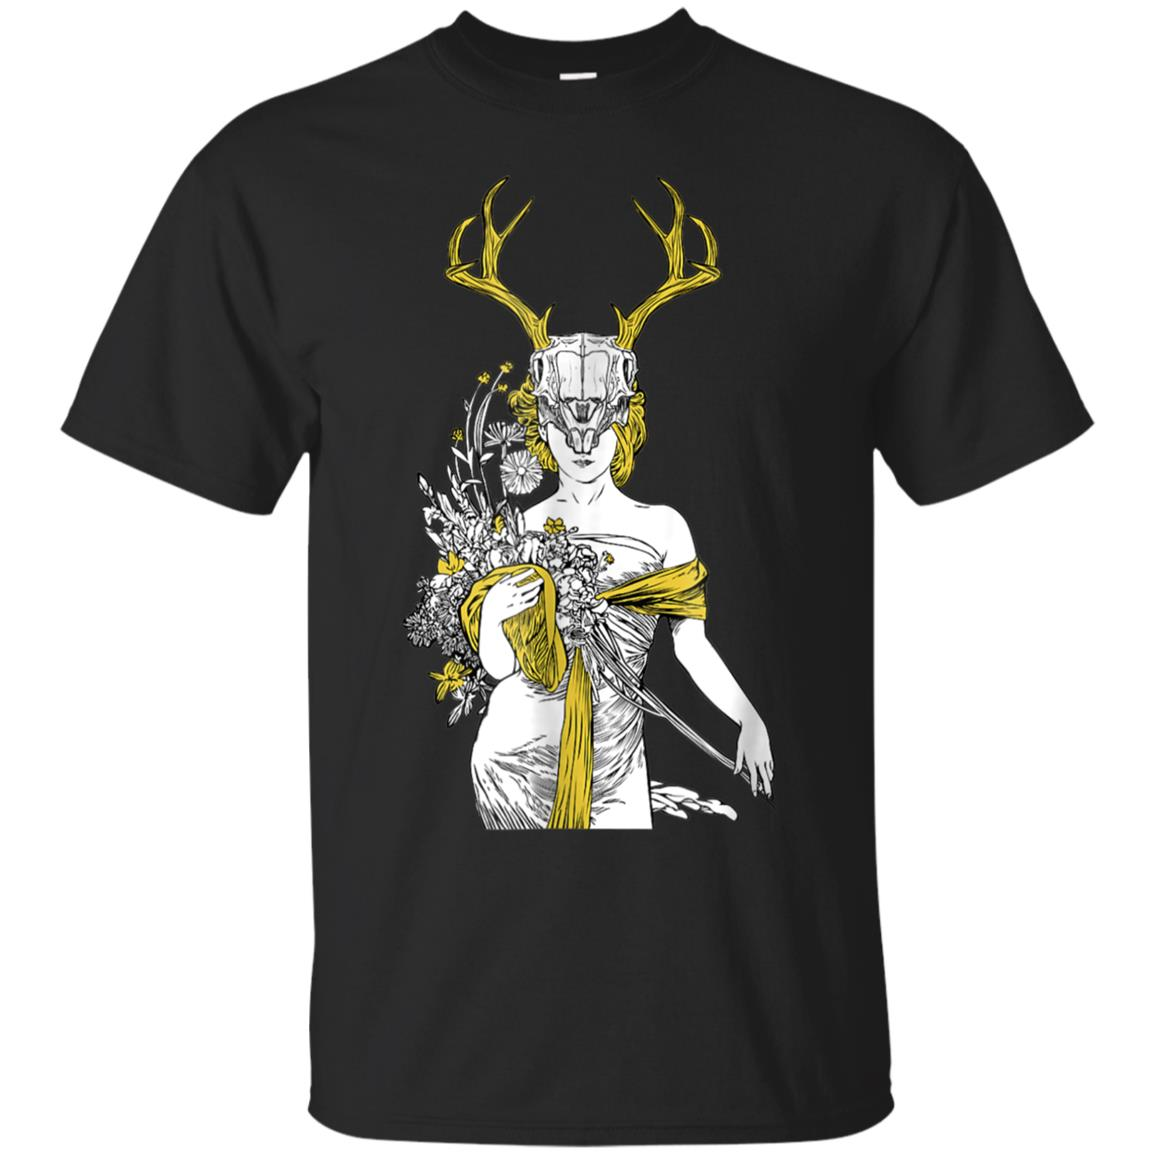 Witch T-shirt - Village Witch Pagan Wicca Deer Skull 99promocode